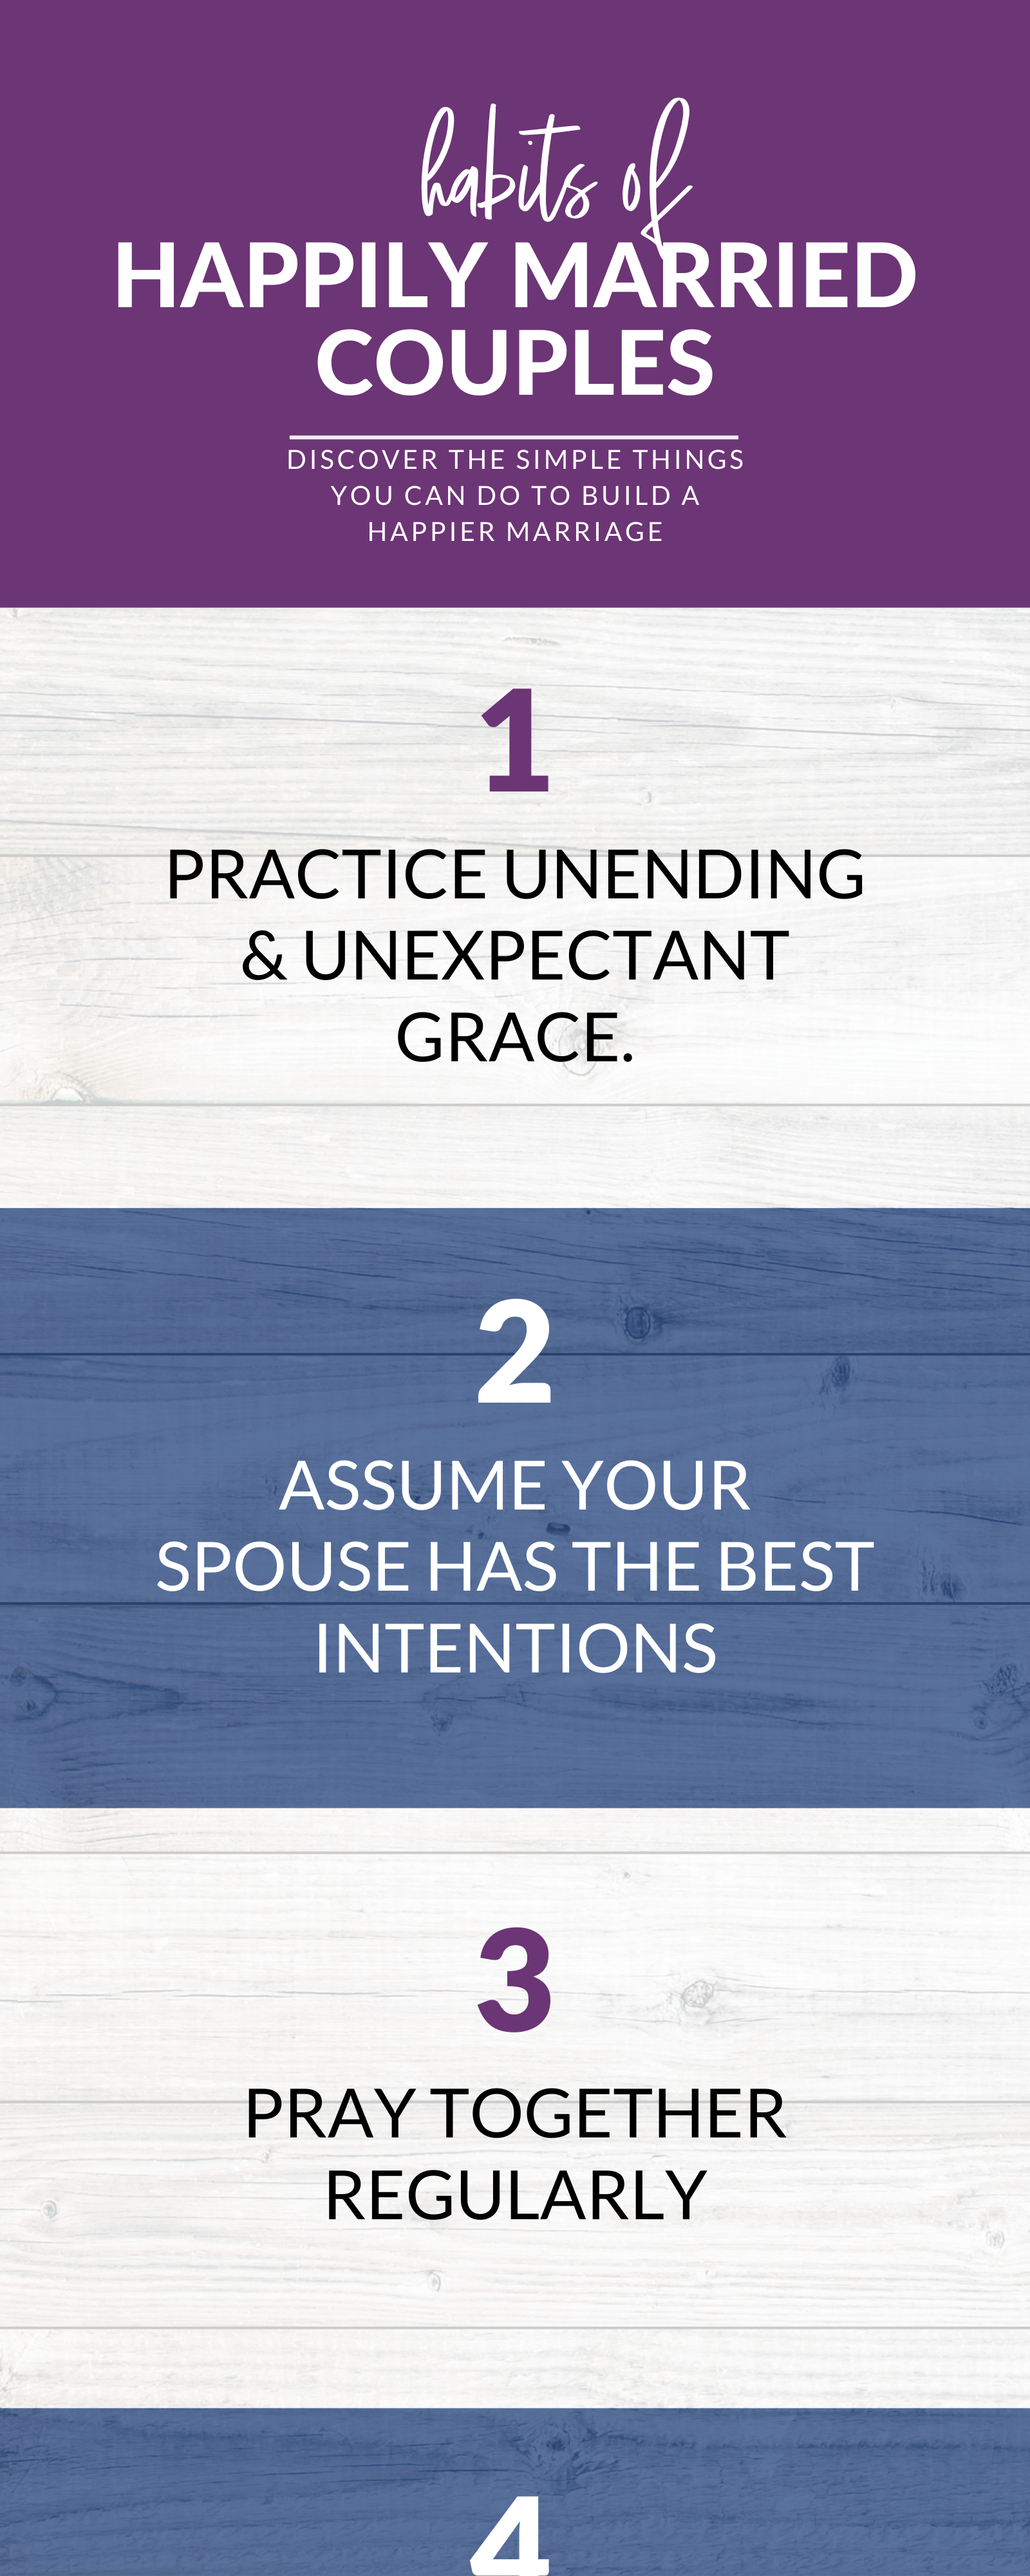 7 Habits Of Happily Married Couples In